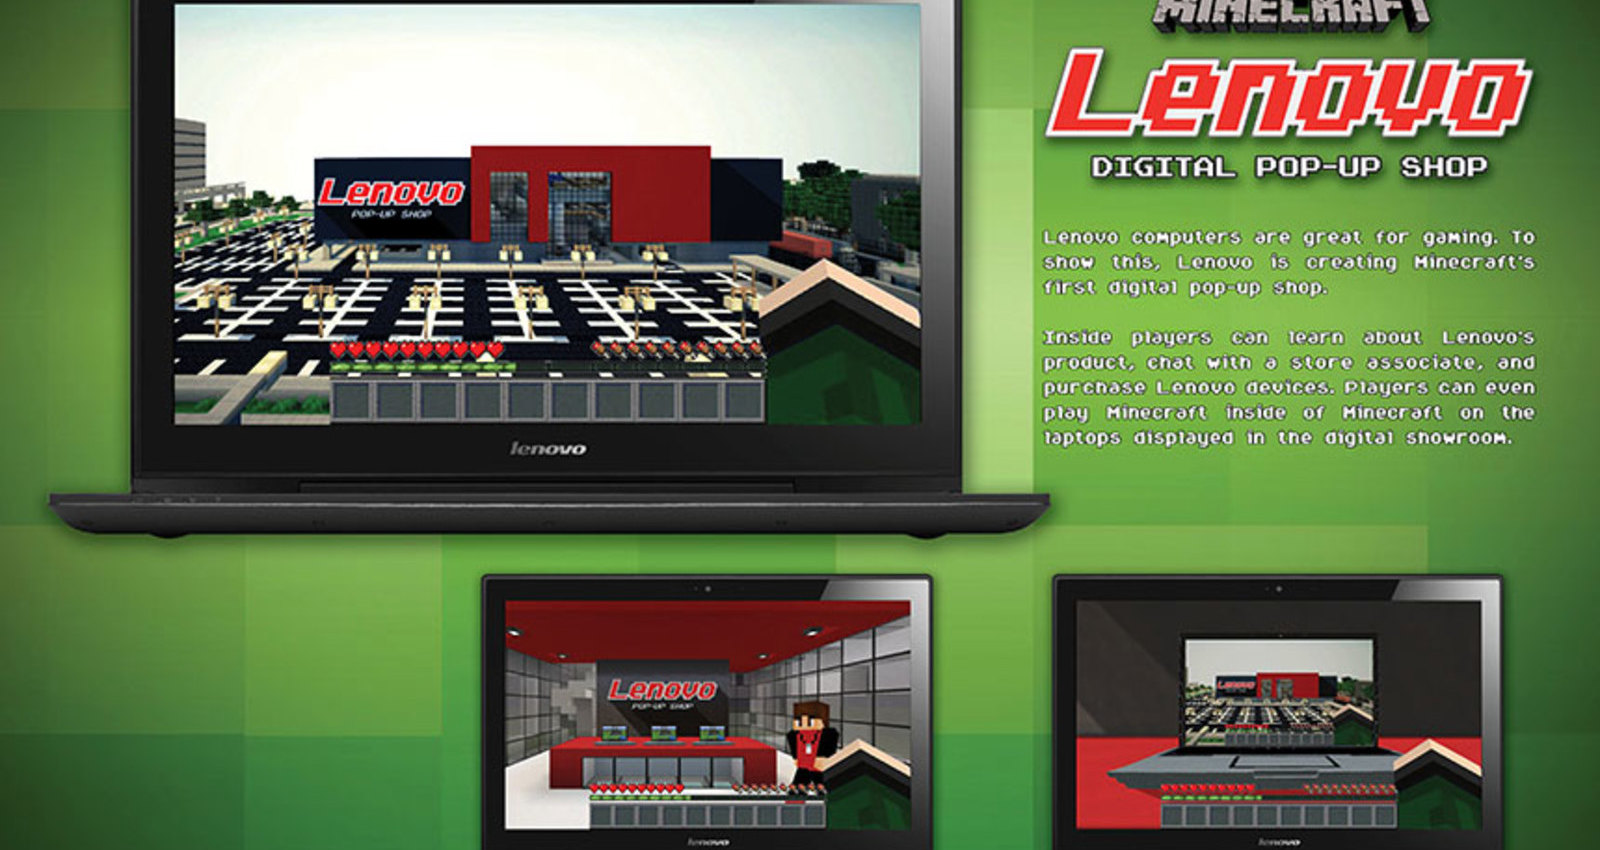 Minecraft Lenovo Digital Pop-Up Shop